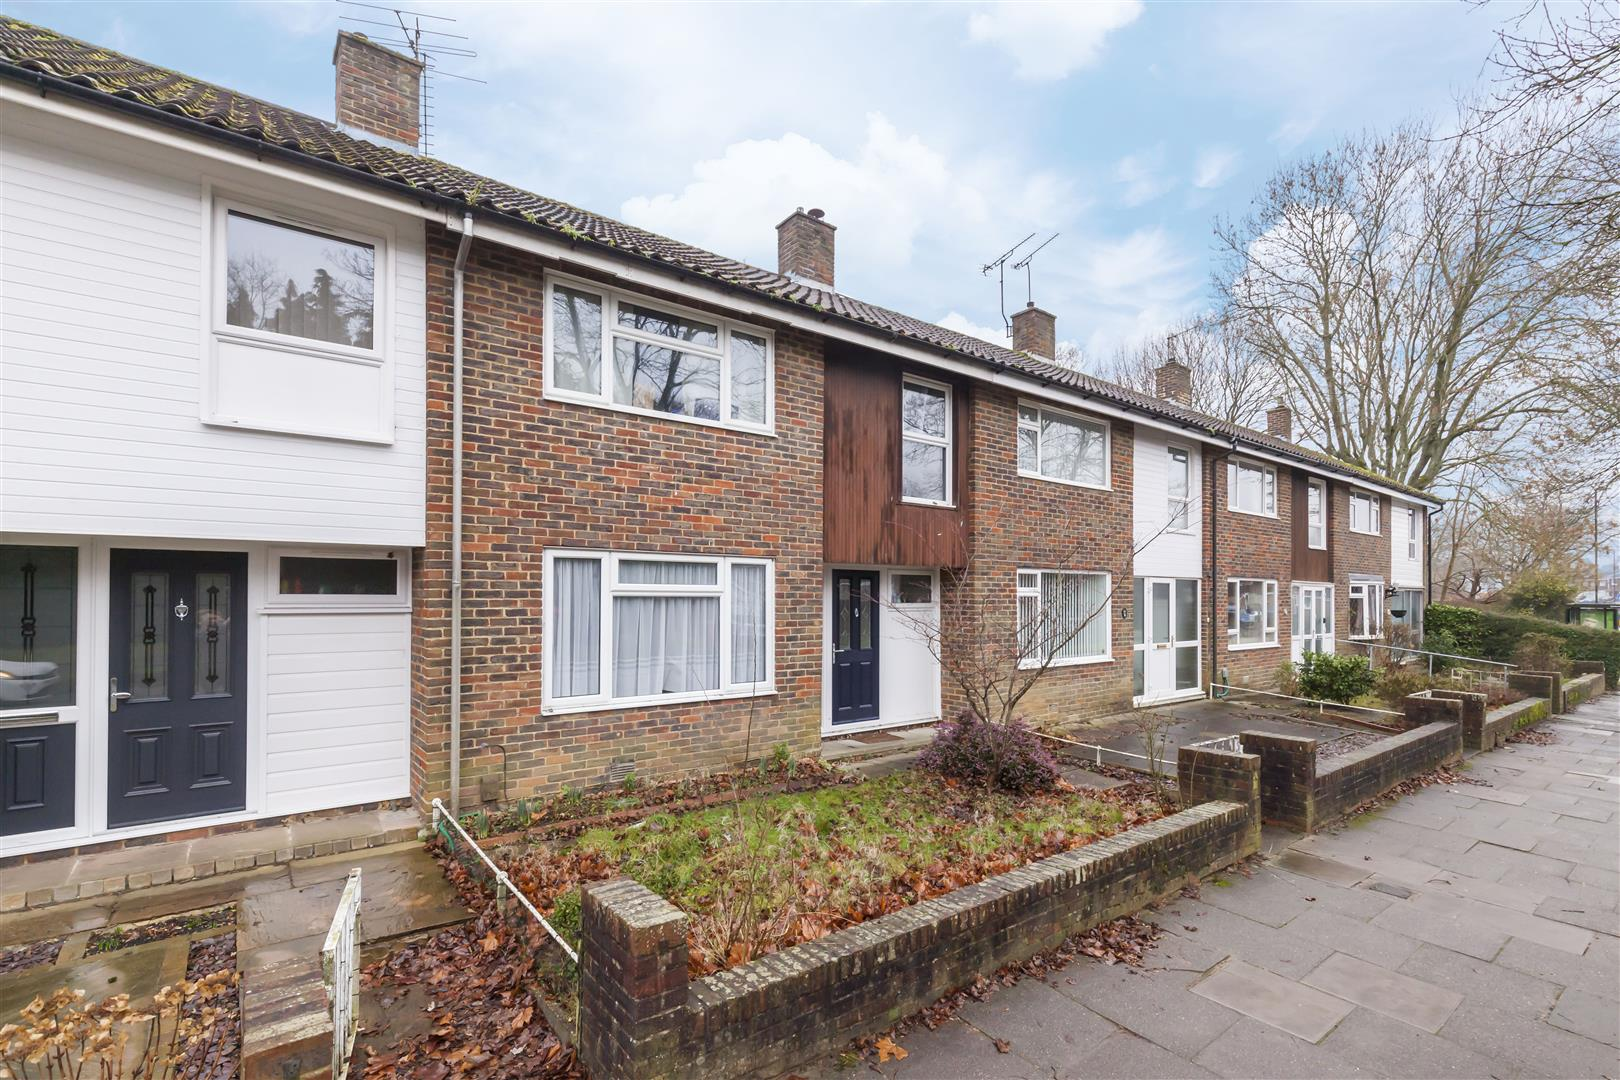 3 bed terraced house for sale in Furnace Drive, Crawley  - Property Image 1